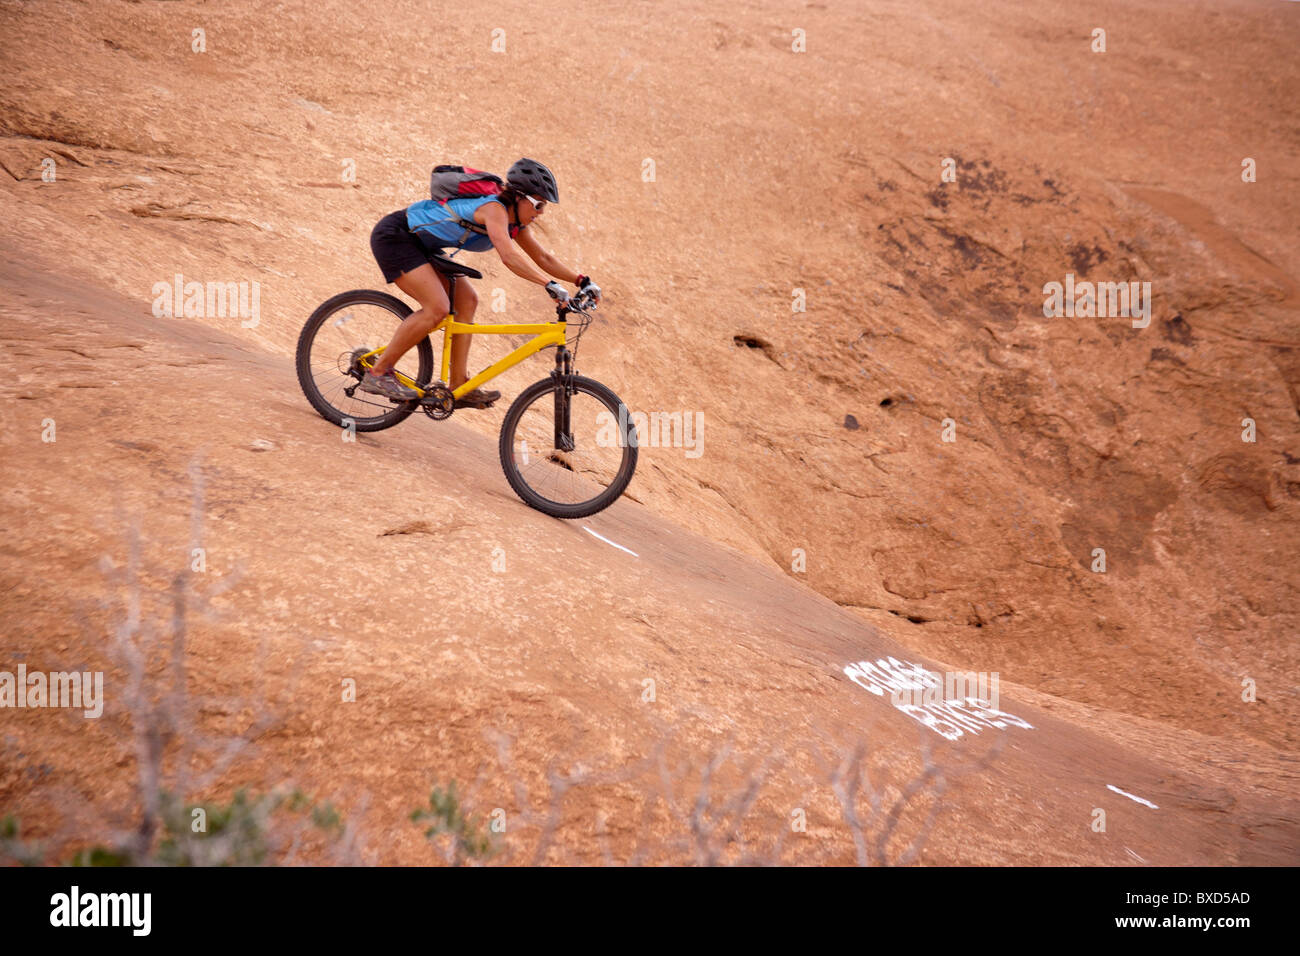 A woman mountain bikes one of the Slick Rock routes in Moab Utah. - Stock Image